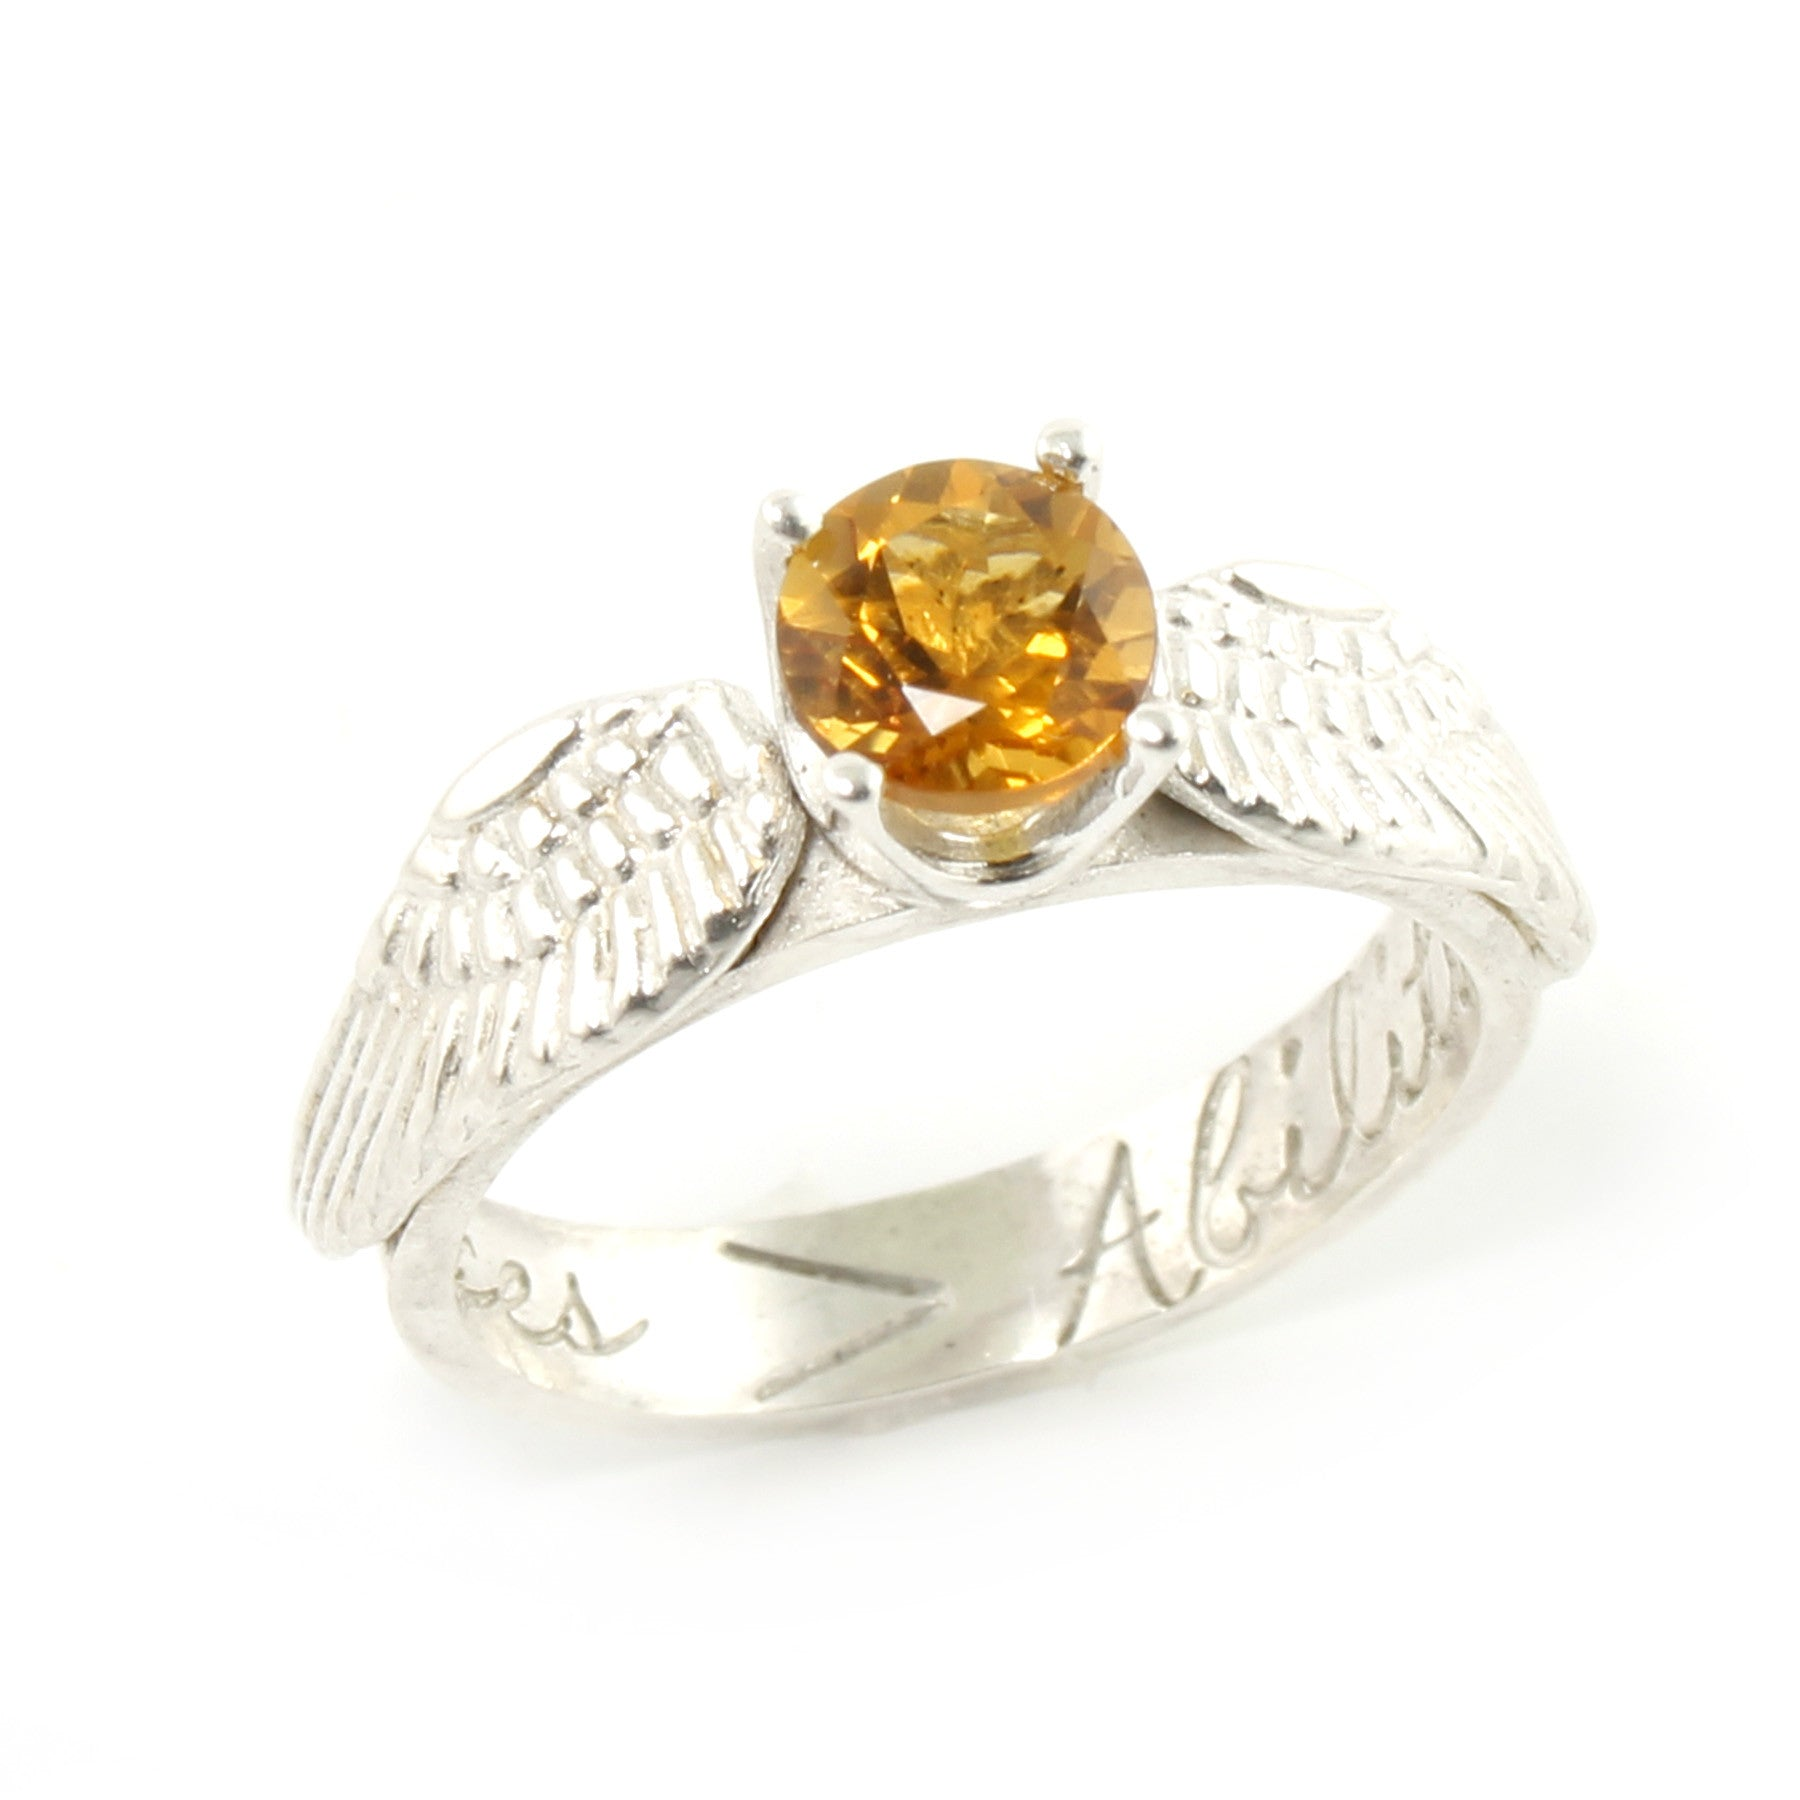 marlow rings setting in ct amber ring engagement white caymancode diamond kt gold rose artcarved and tw